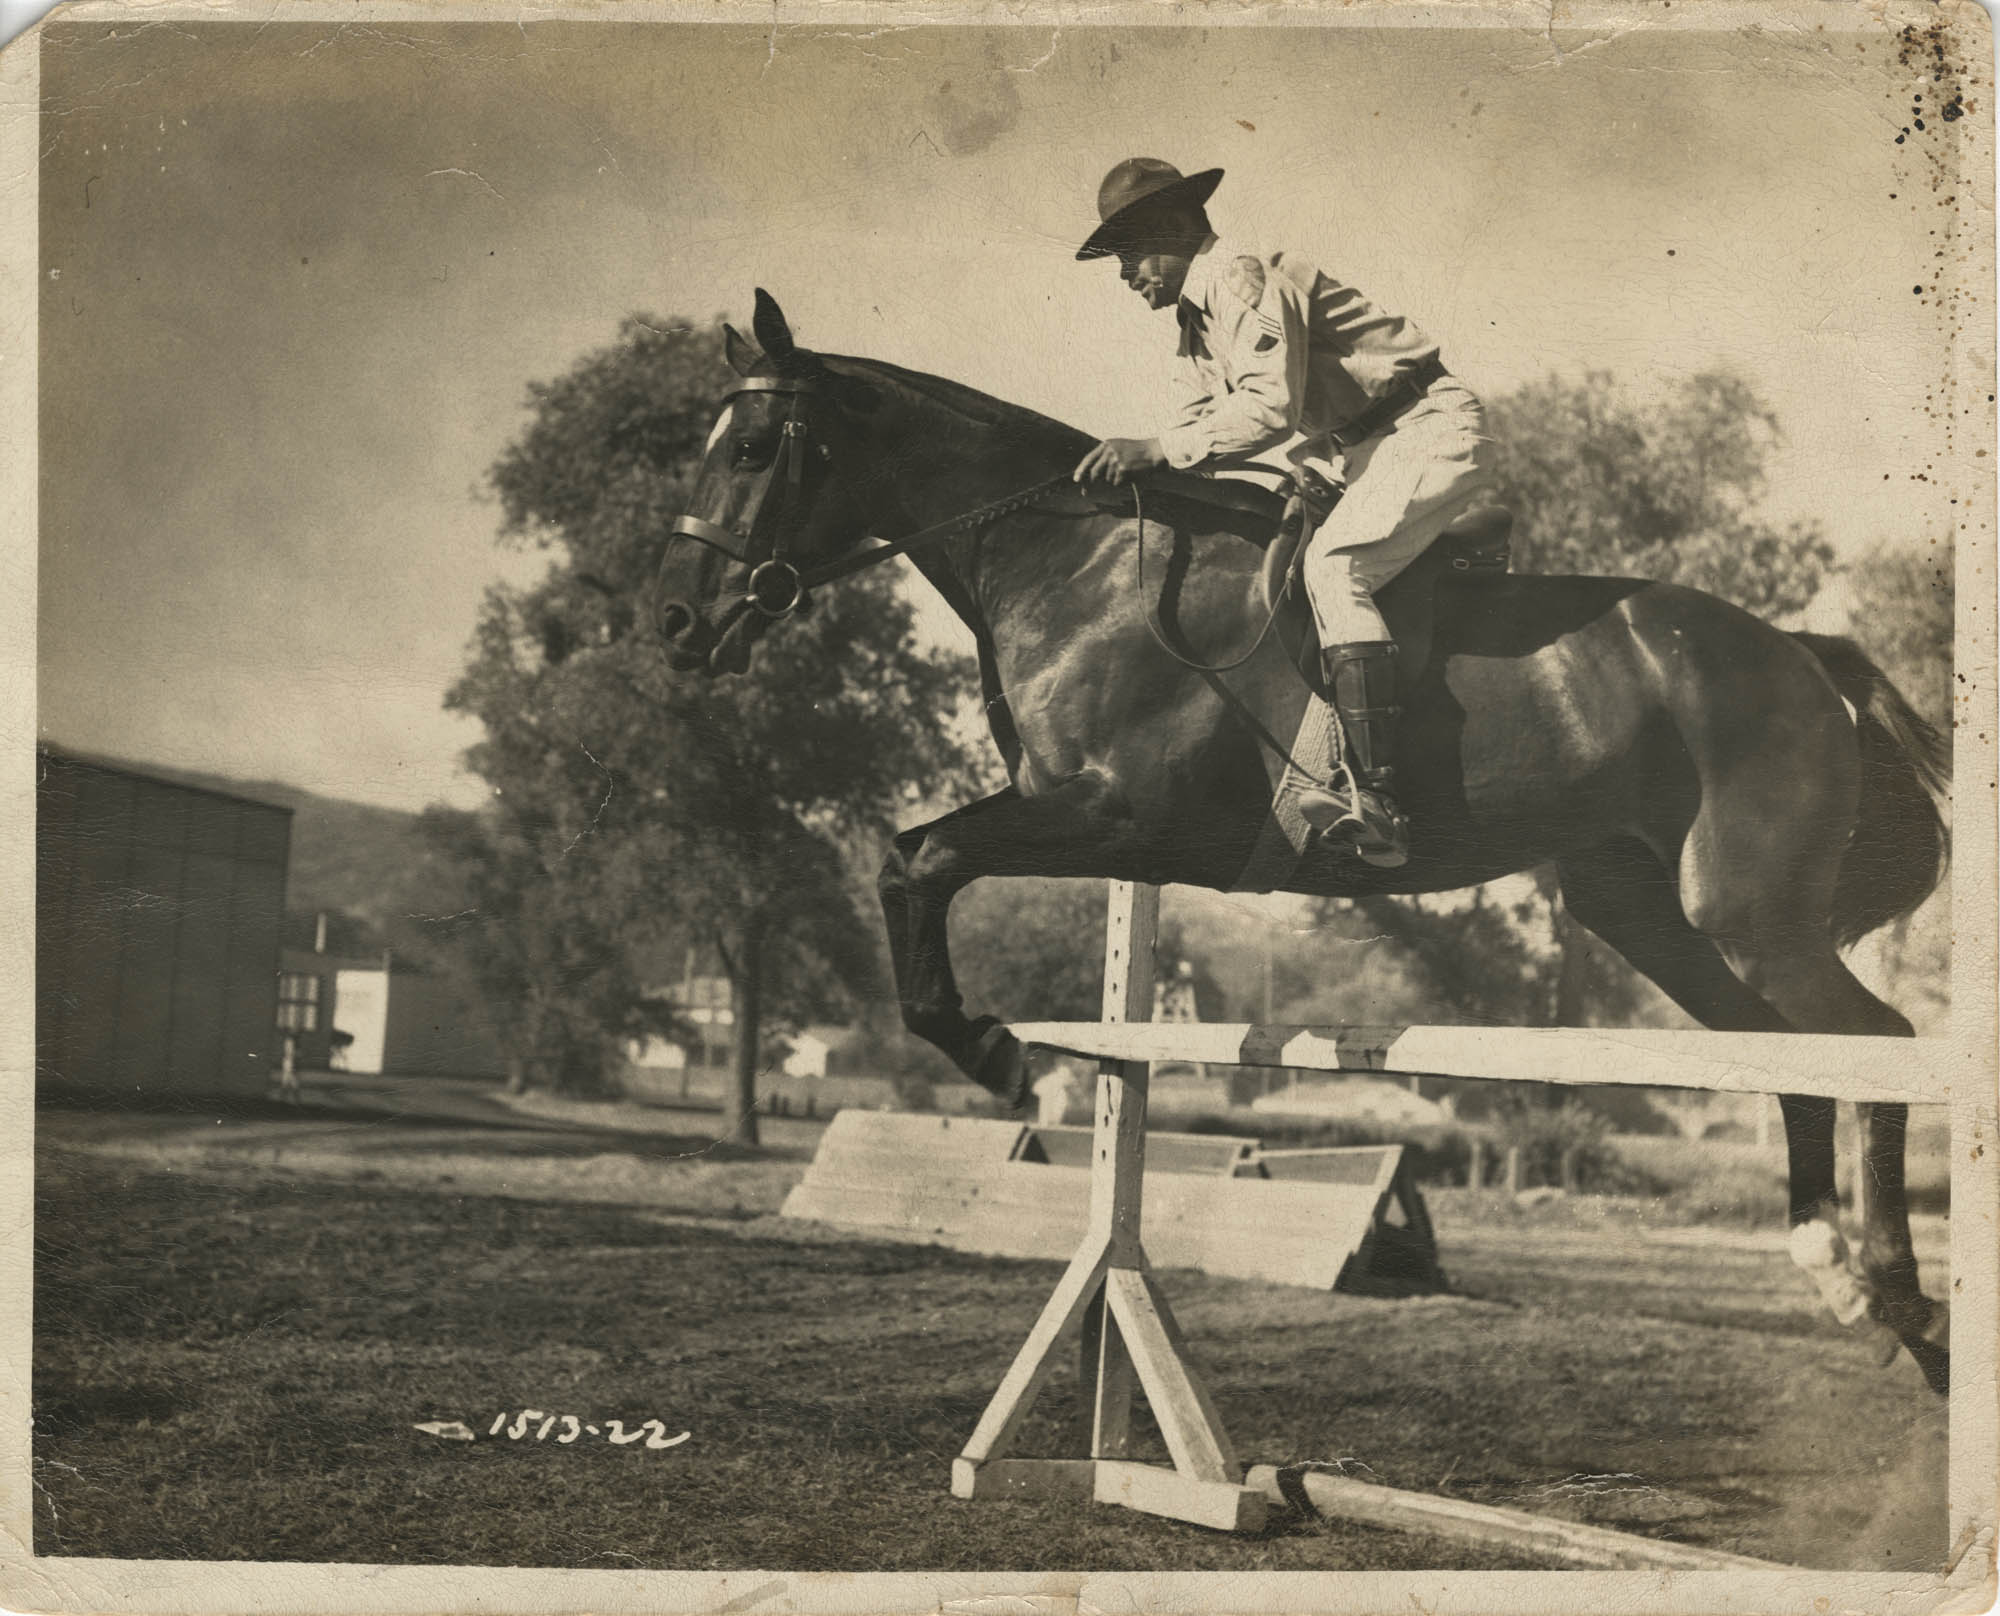 Photograph of a Man in Uniform Riding a Horse